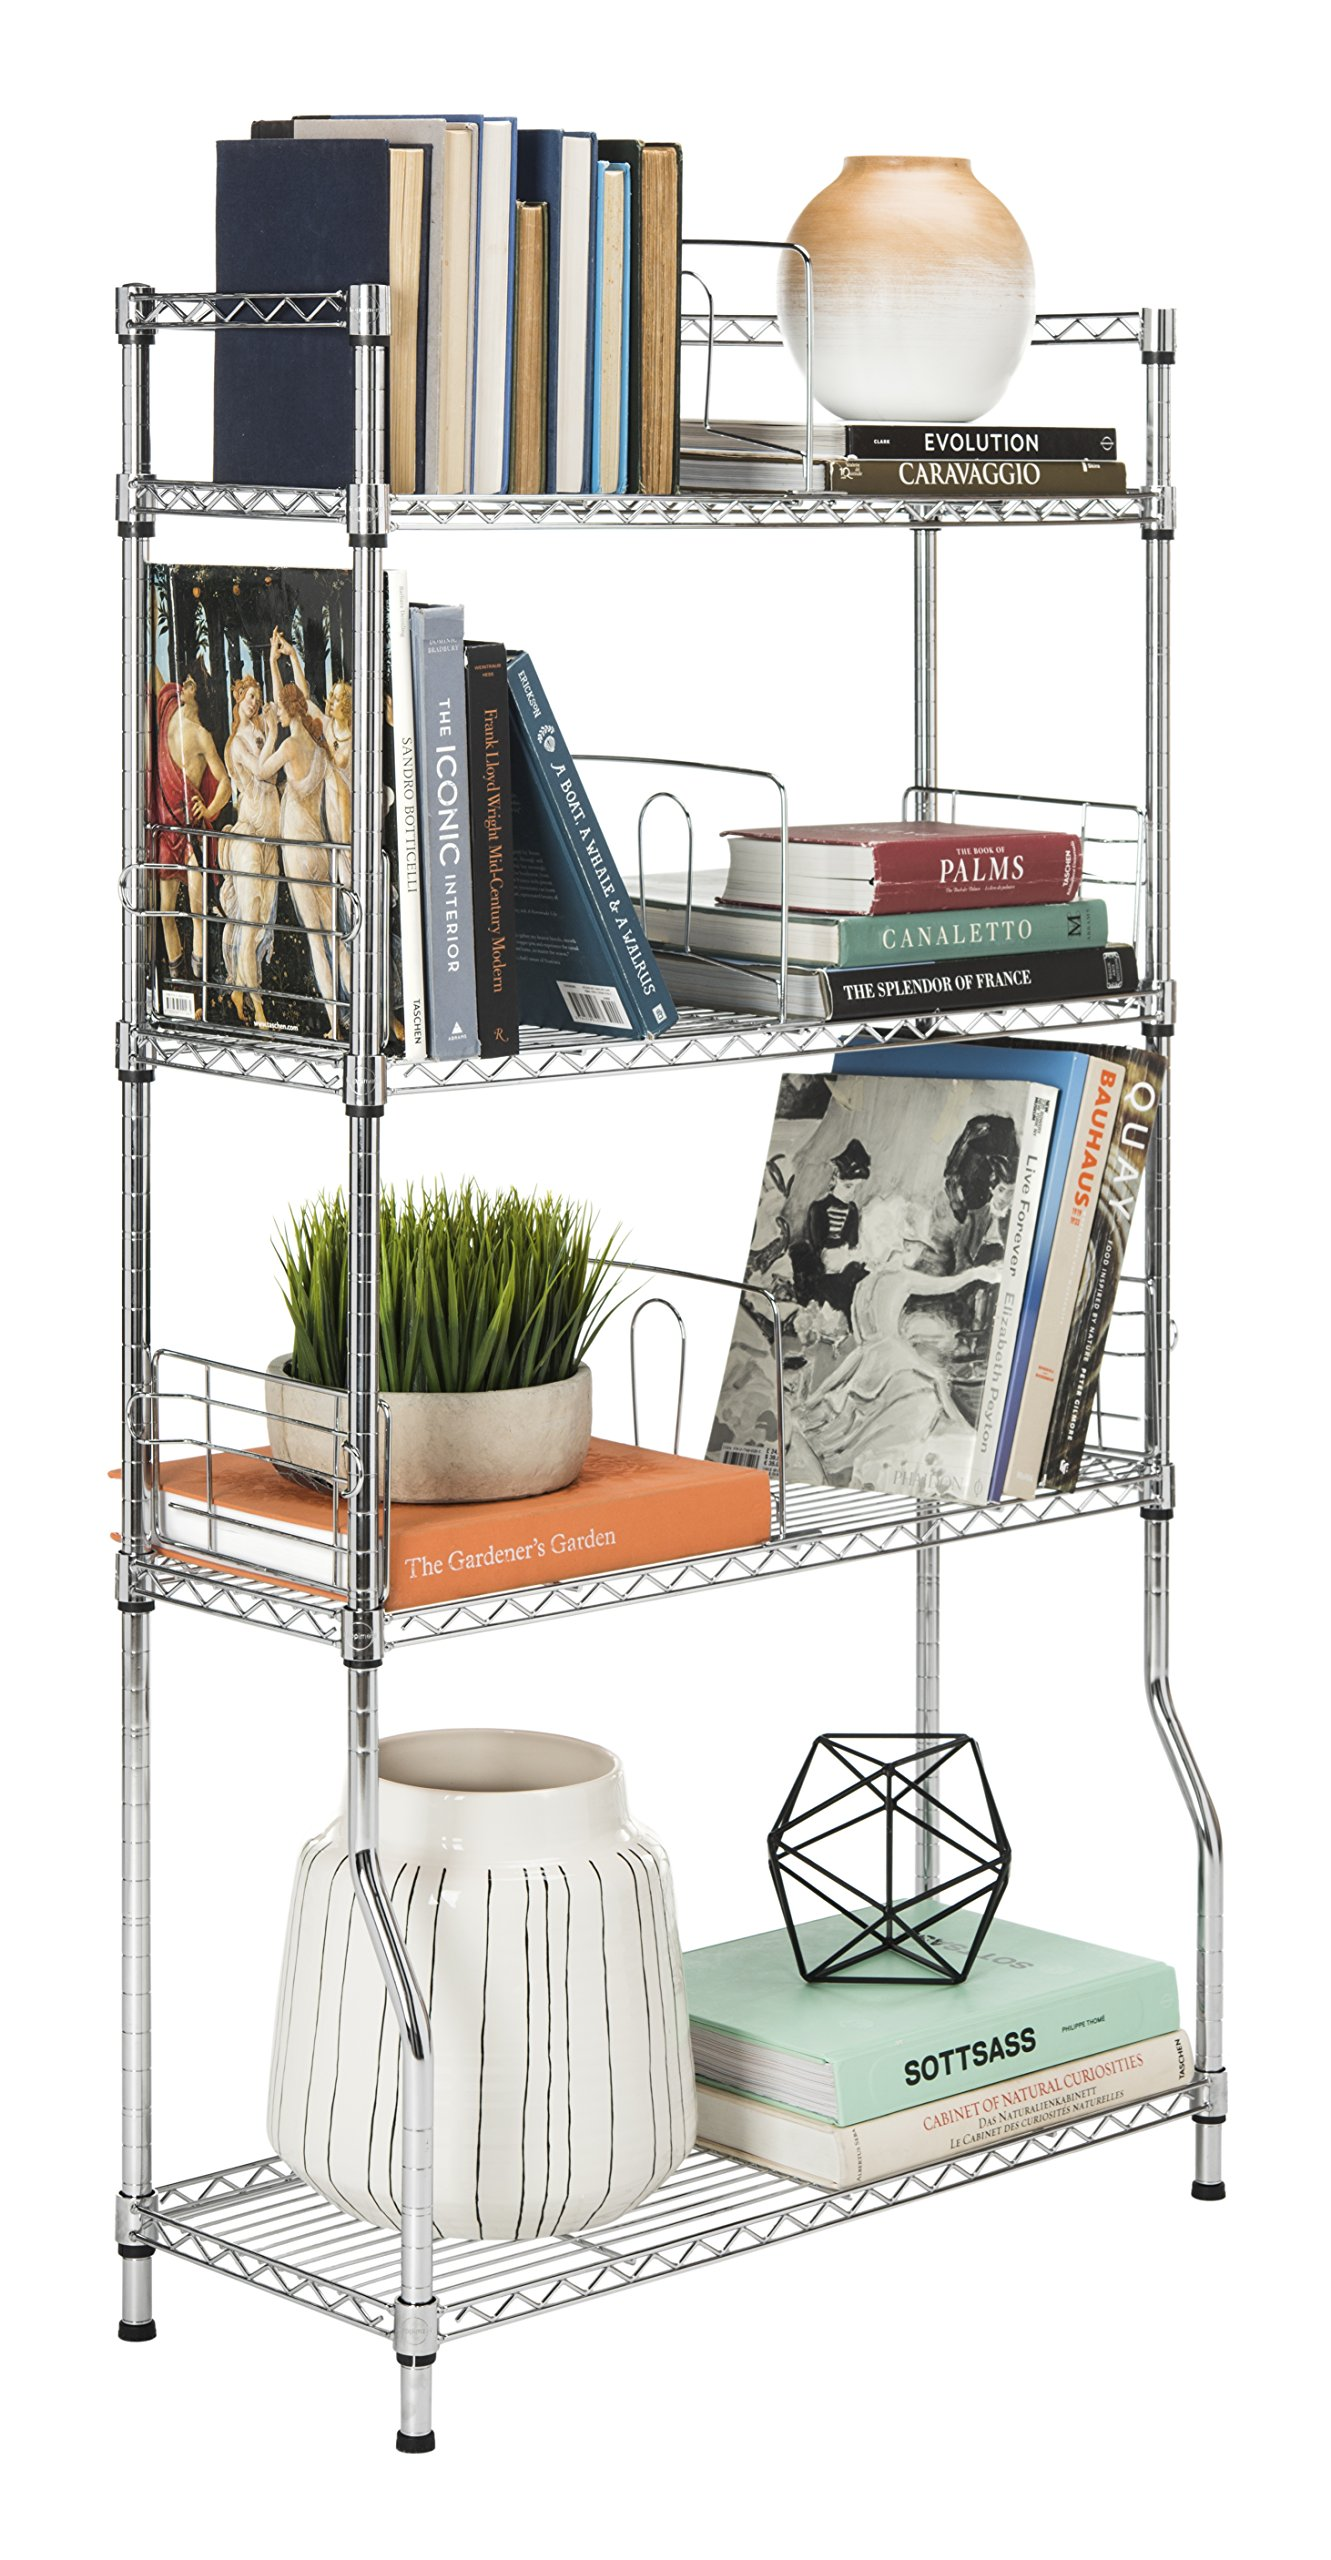 happimess Hope 31.5'' 4-Tier Adjustable Baker's Rack, Chrome by happimess